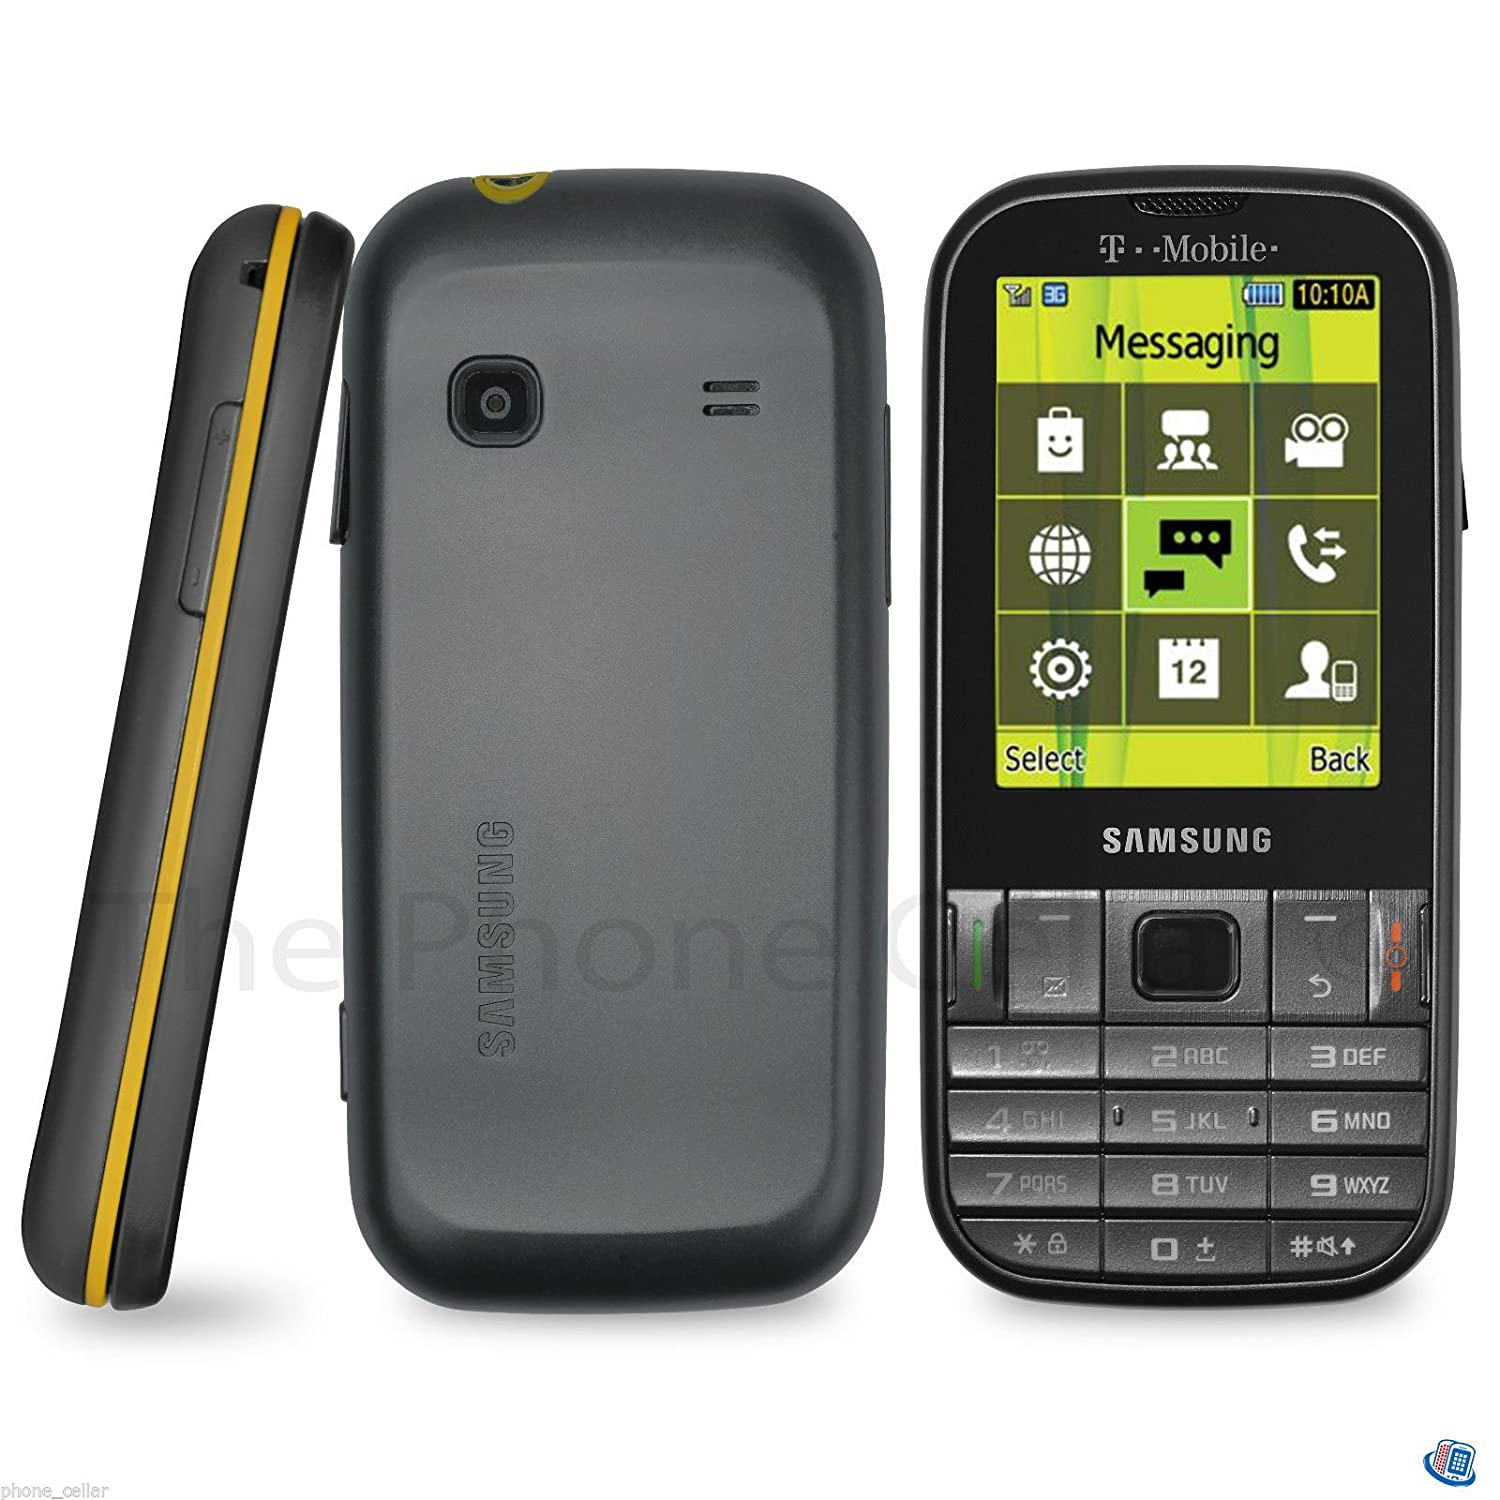 Samsung-T379-Gravity-TXT-Cell-Phone-T-Mobile-Gray-Yellow-No-Contract